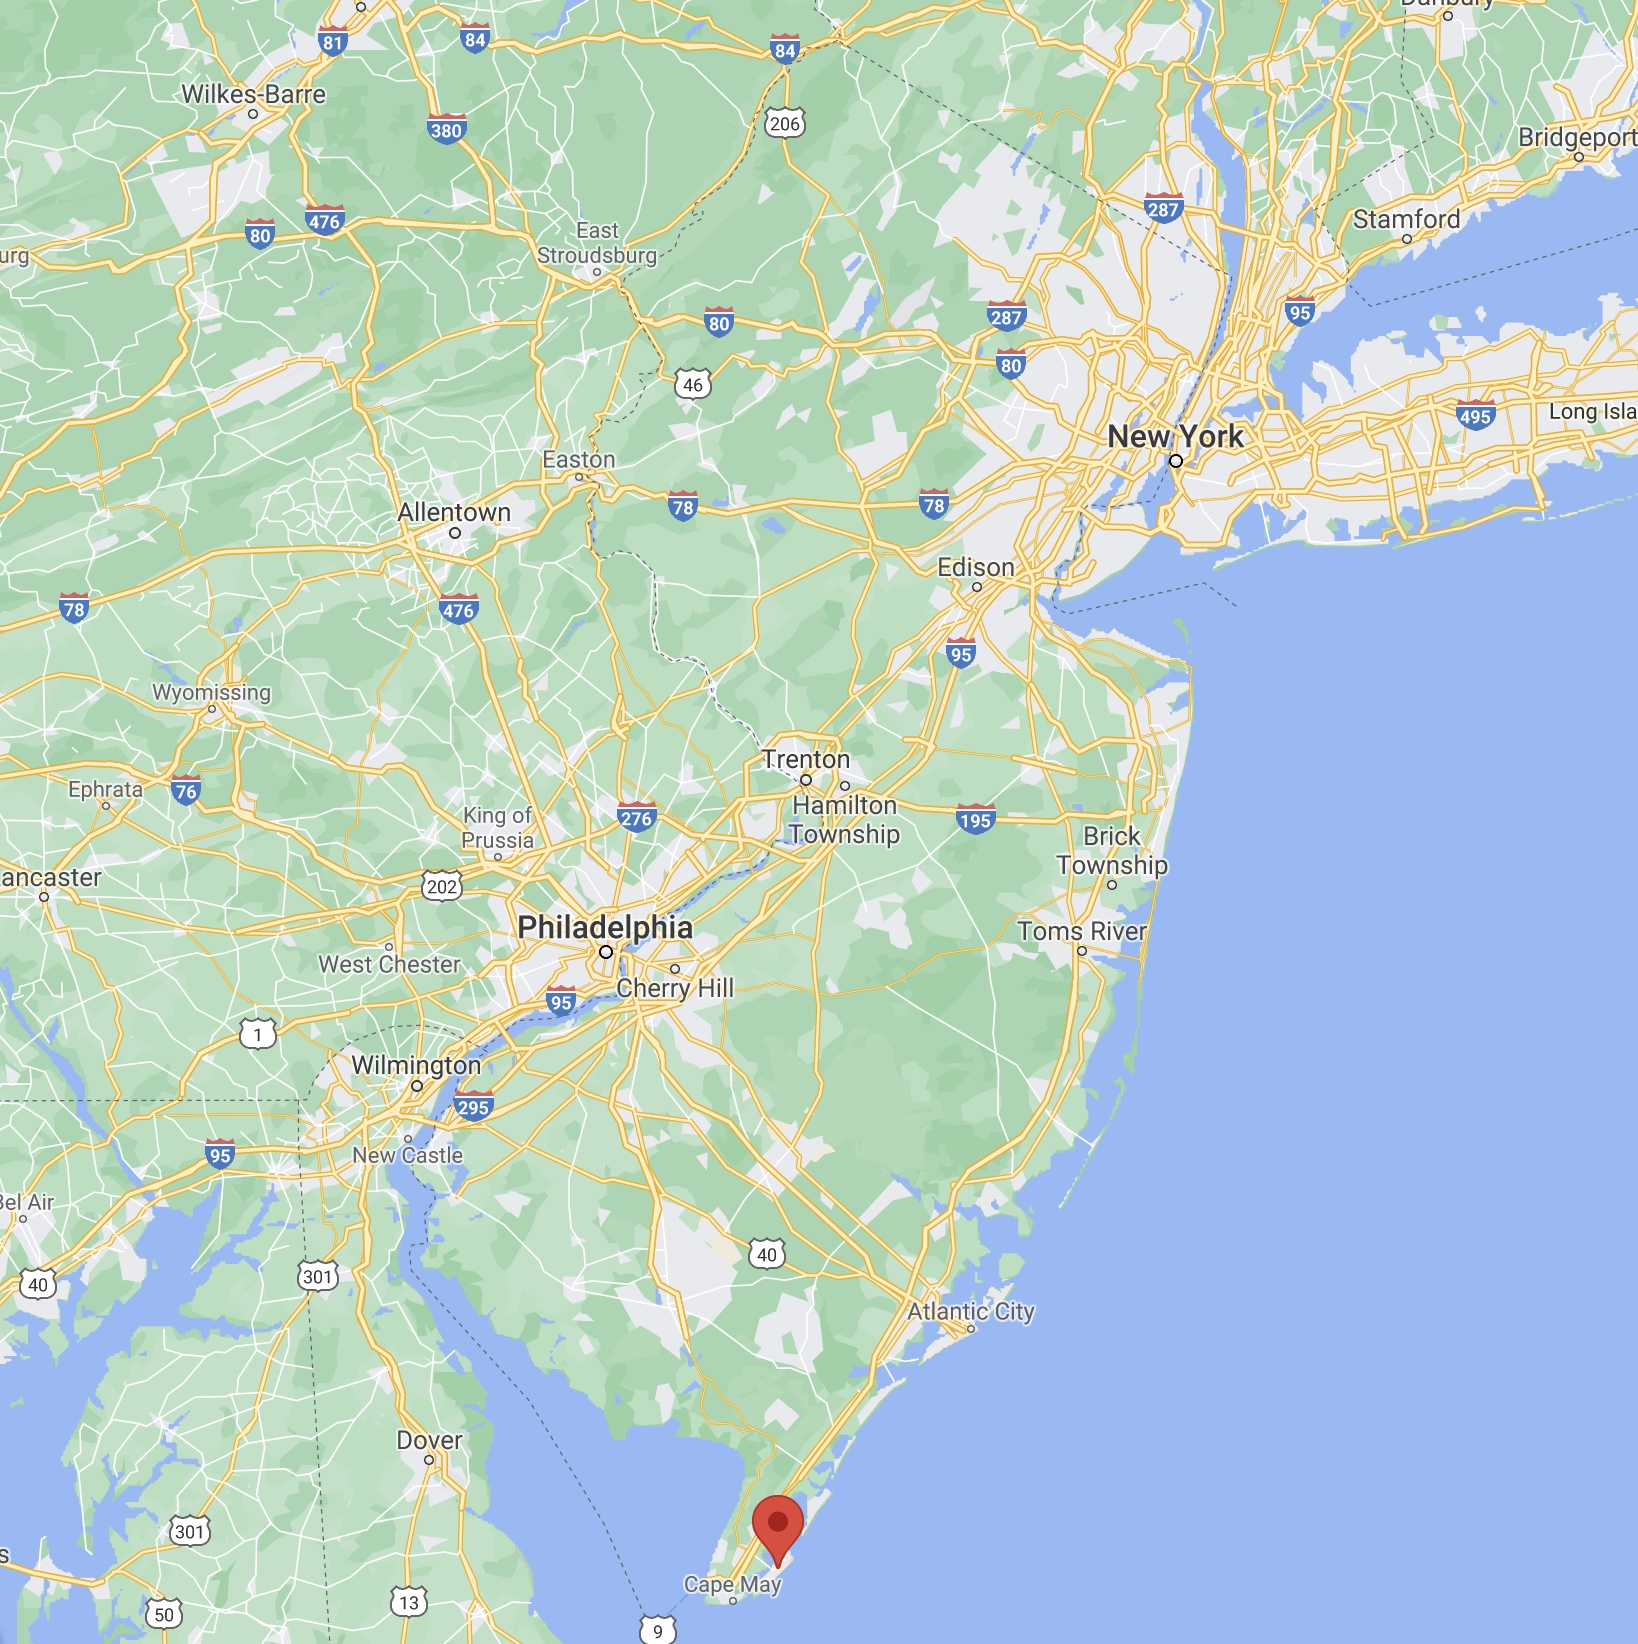 Map of New Jersey with red pin in location of Wildwood.